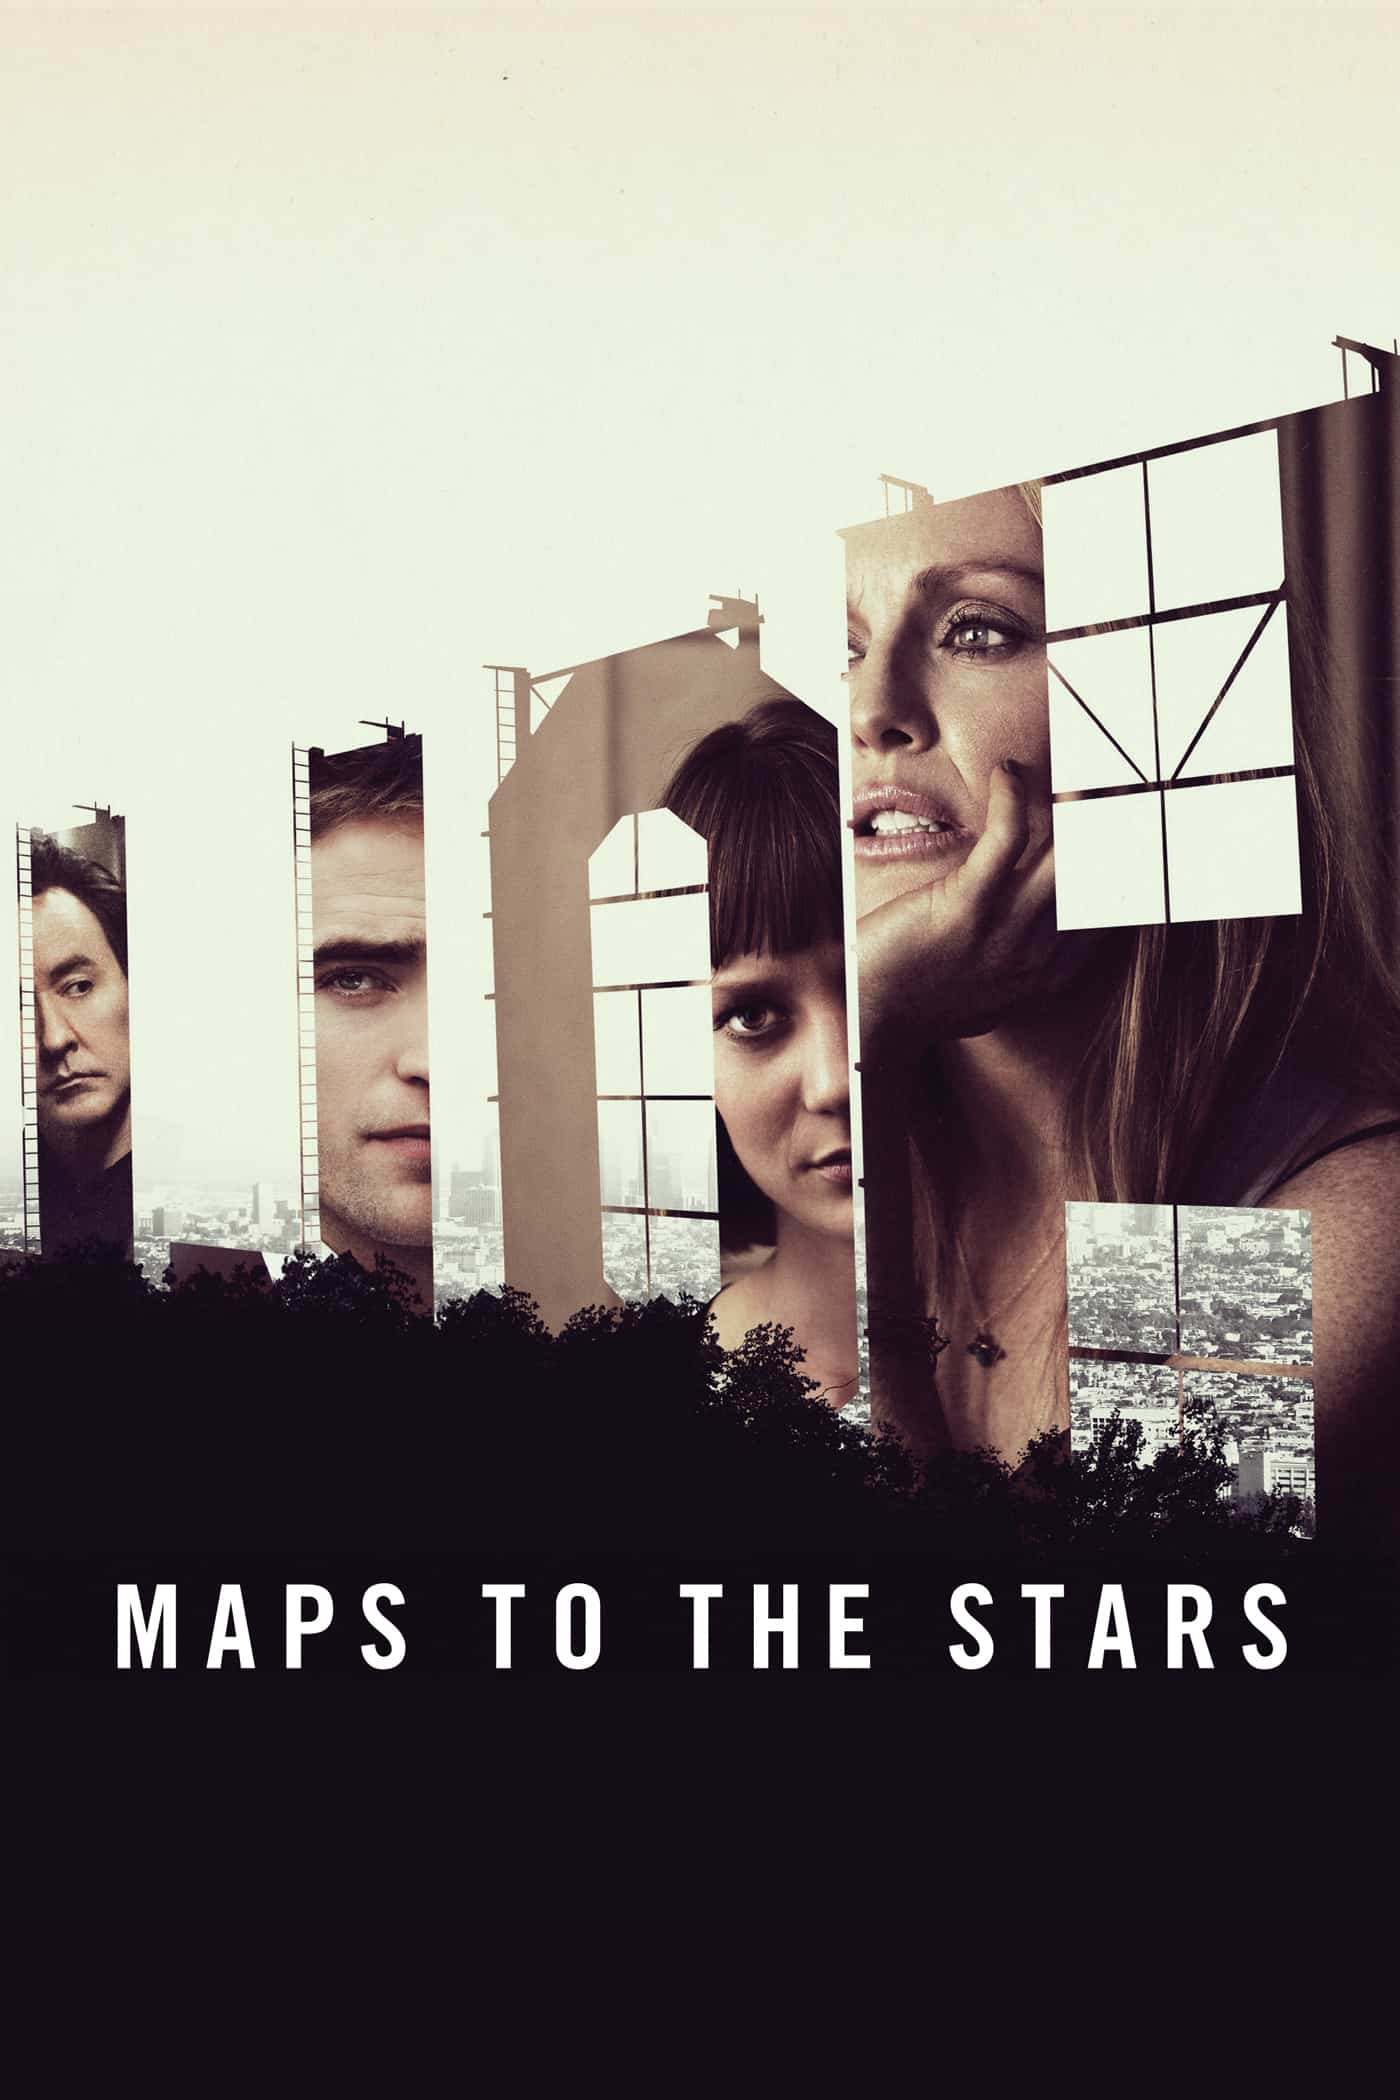 Maps to the Stars, 2014